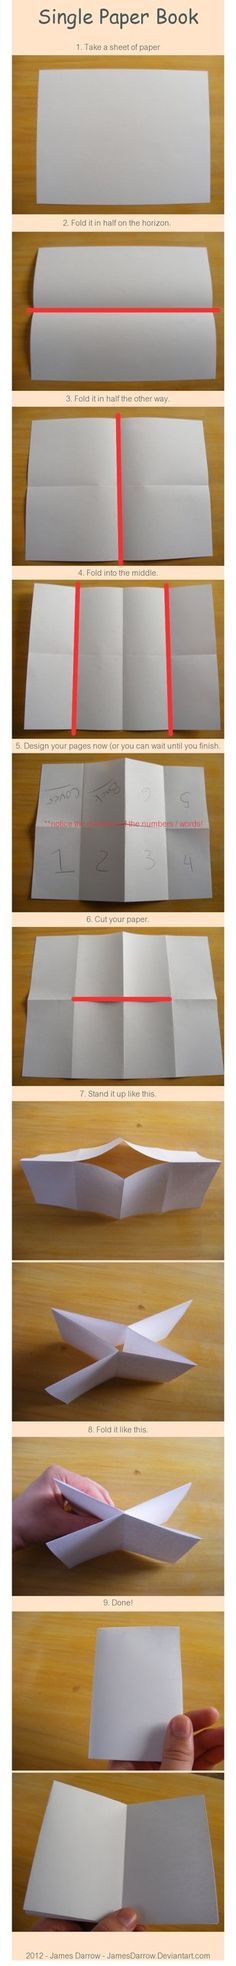 make a little book out of a single sheet of paper